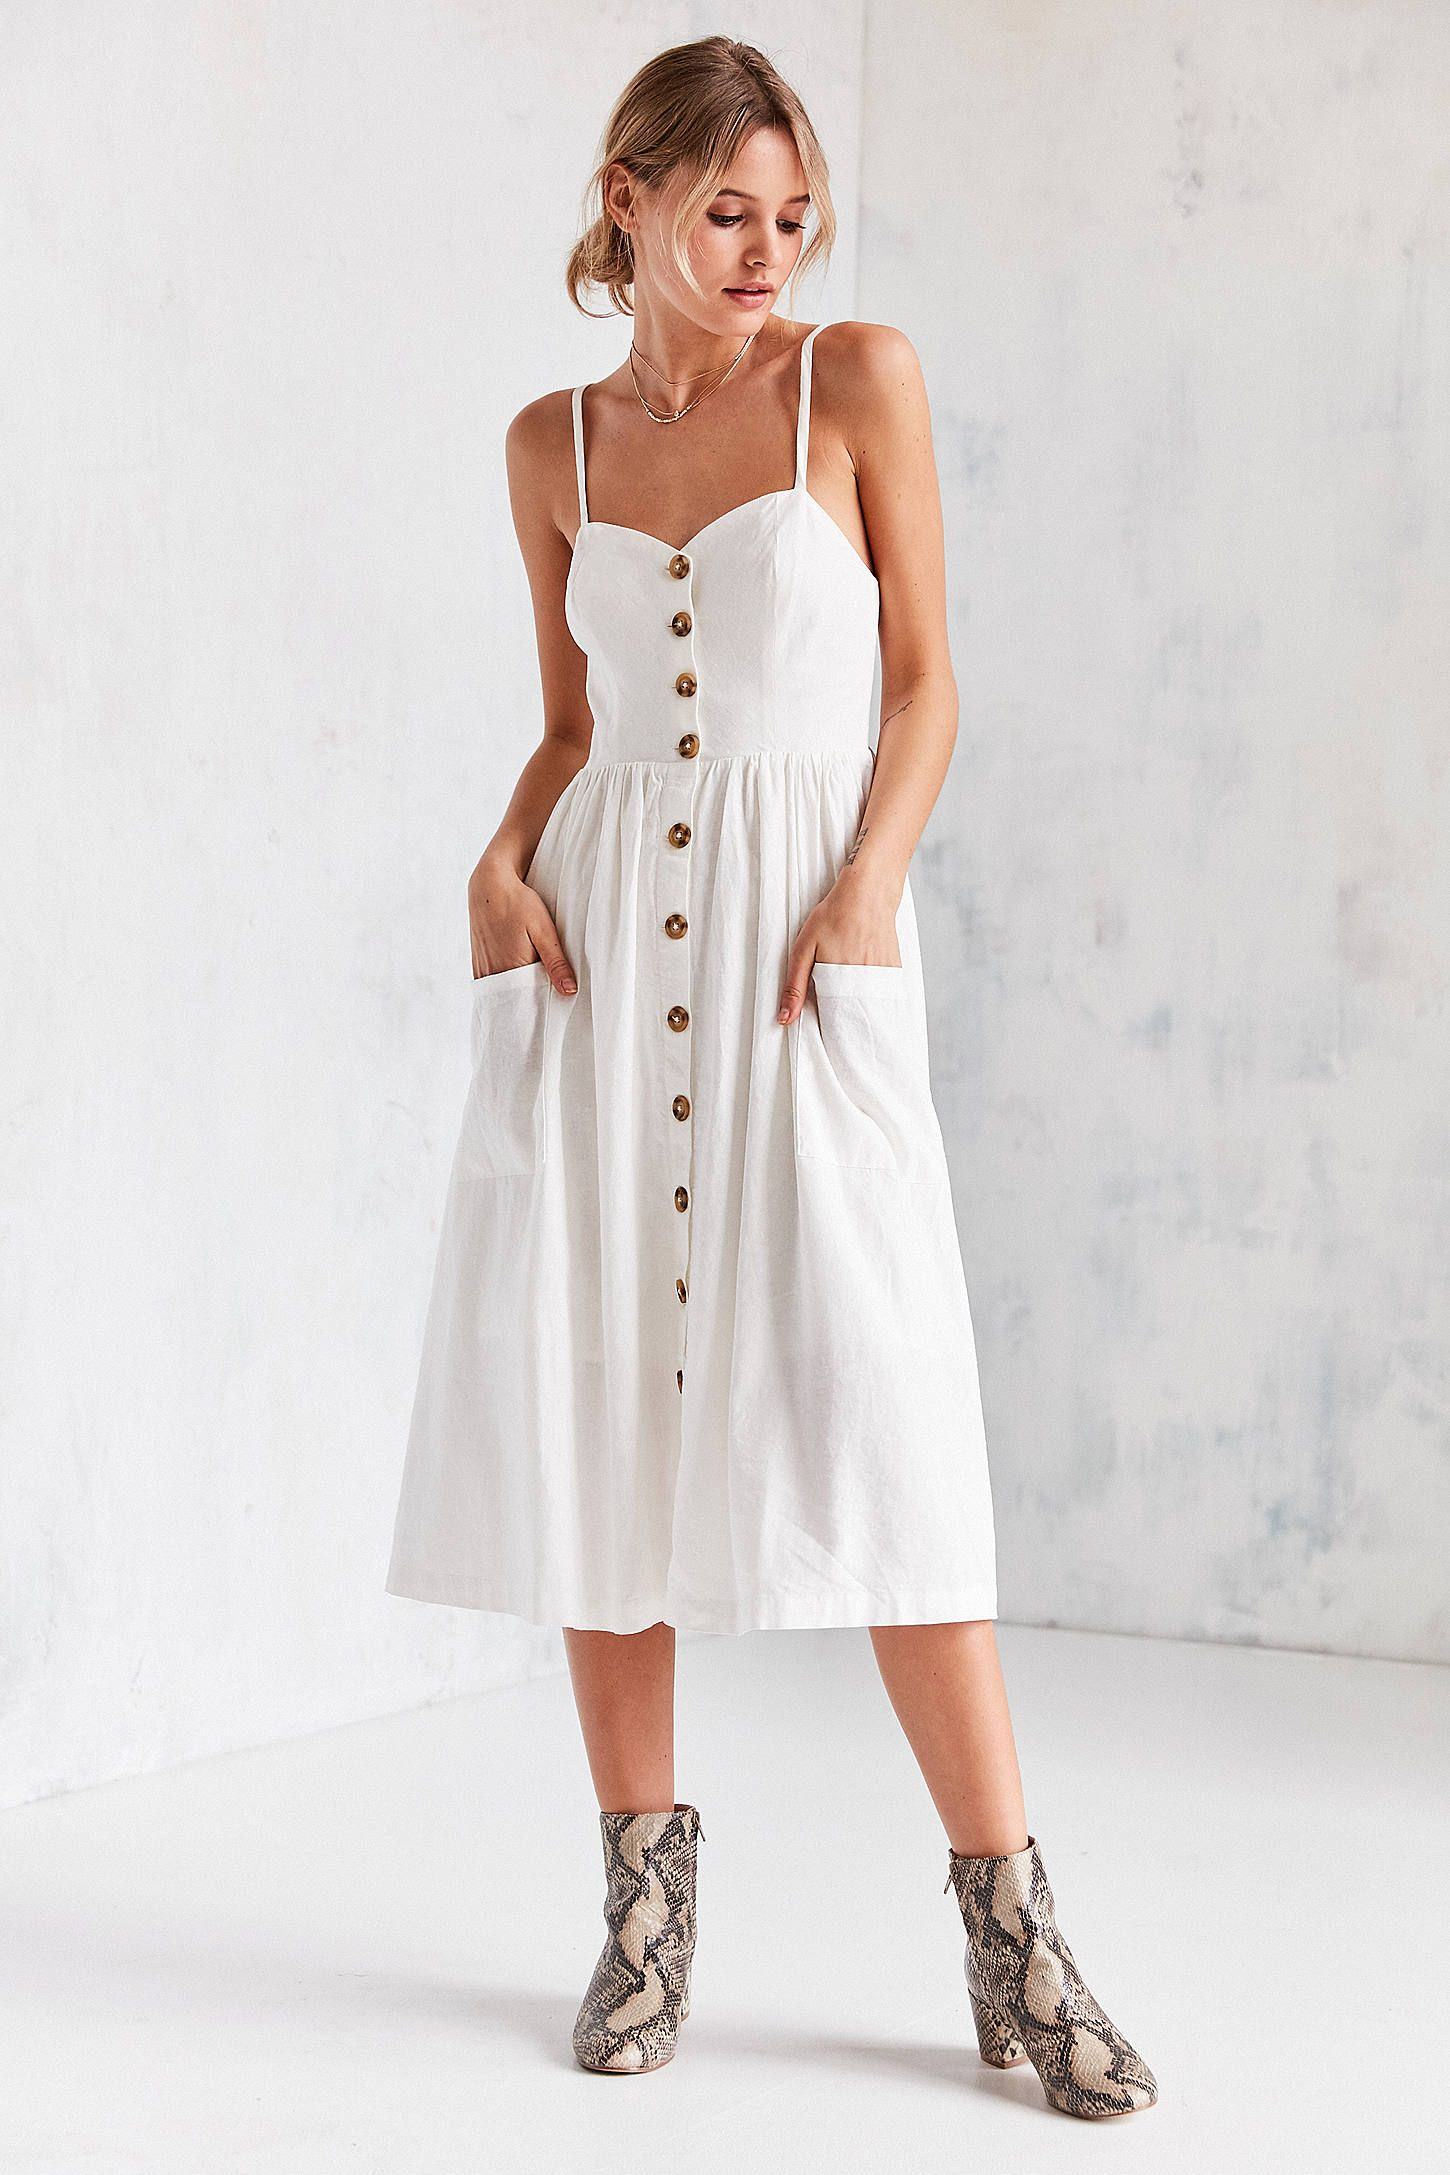 fd1e1d945a2 Shop Urban Outfitters Emilia Linen Button-Down Midi Dress at Urban  Outfitters today. We carry all the latest styles